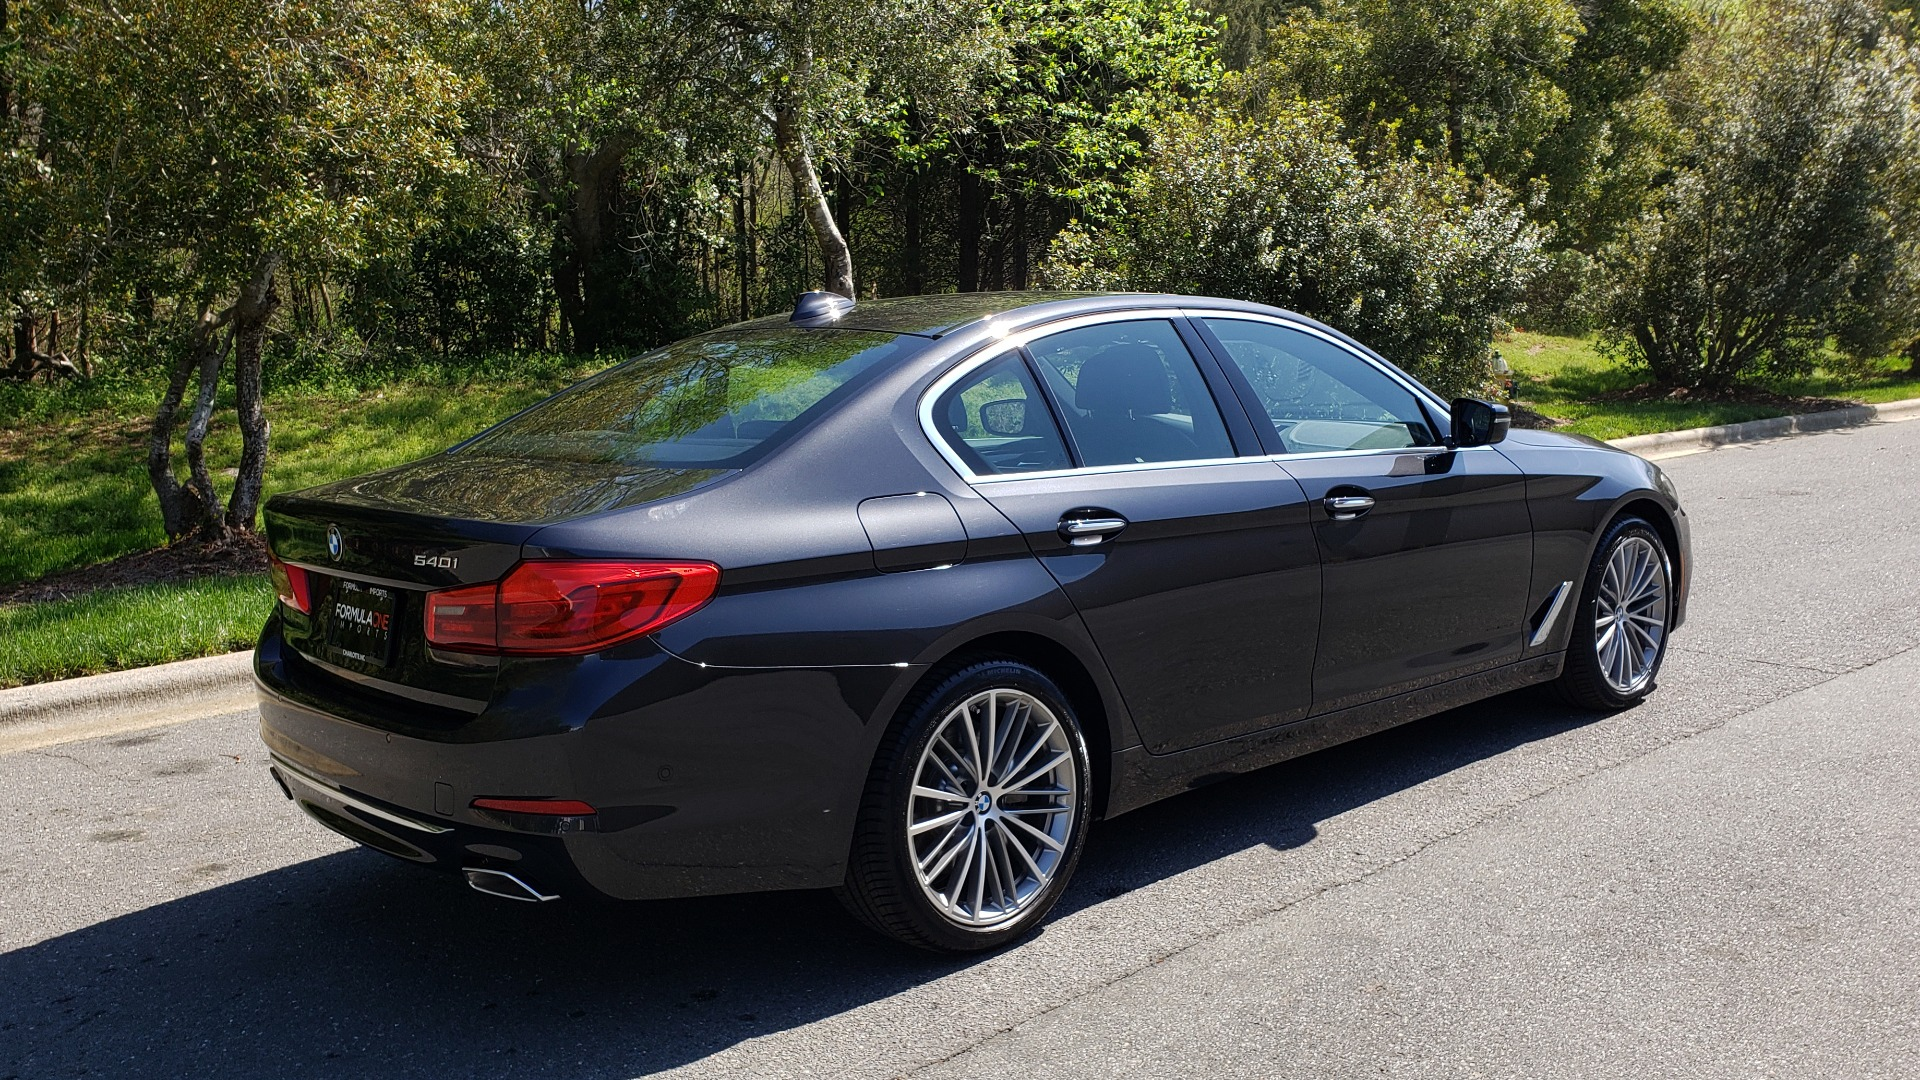 Used 2017 BMW 5 SERIES 540I PREMIUM / DRVR ASST PLUS / NAV / SNF / HARMAN/KARDON for sale Sold at Formula Imports in Charlotte NC 28227 6